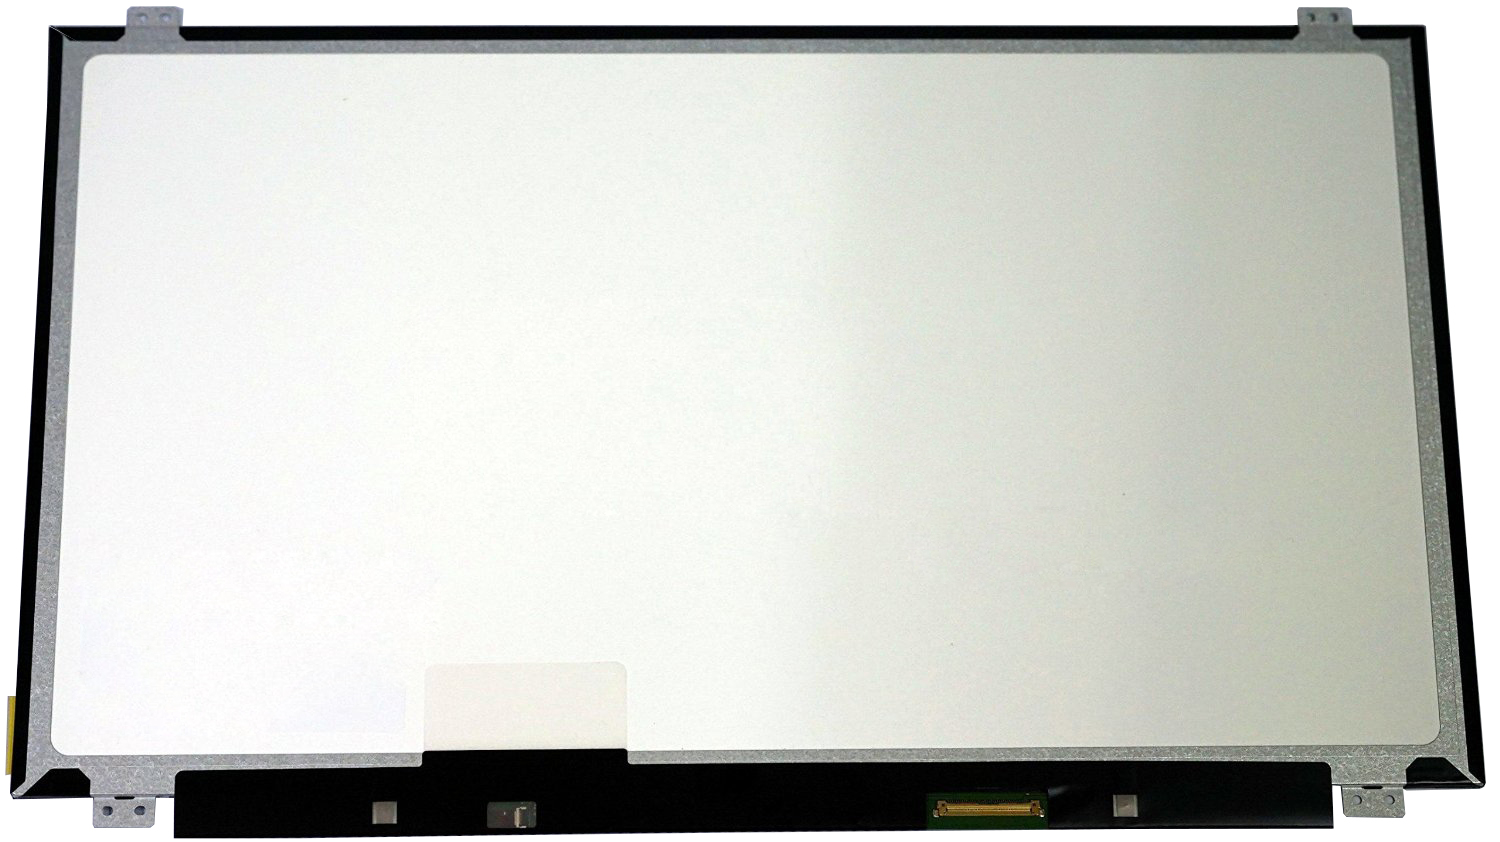 QuYing Laptop LCD Screen for ACER ASPIRE E5-571G E5-521 E5-521G SERIES (15.6 inch 1366x768 30pin N) quying laptop lcd screen for acer aspire ethos 5951g timeline 5745 7531 series 15 6 inch 1366x768 40pin n